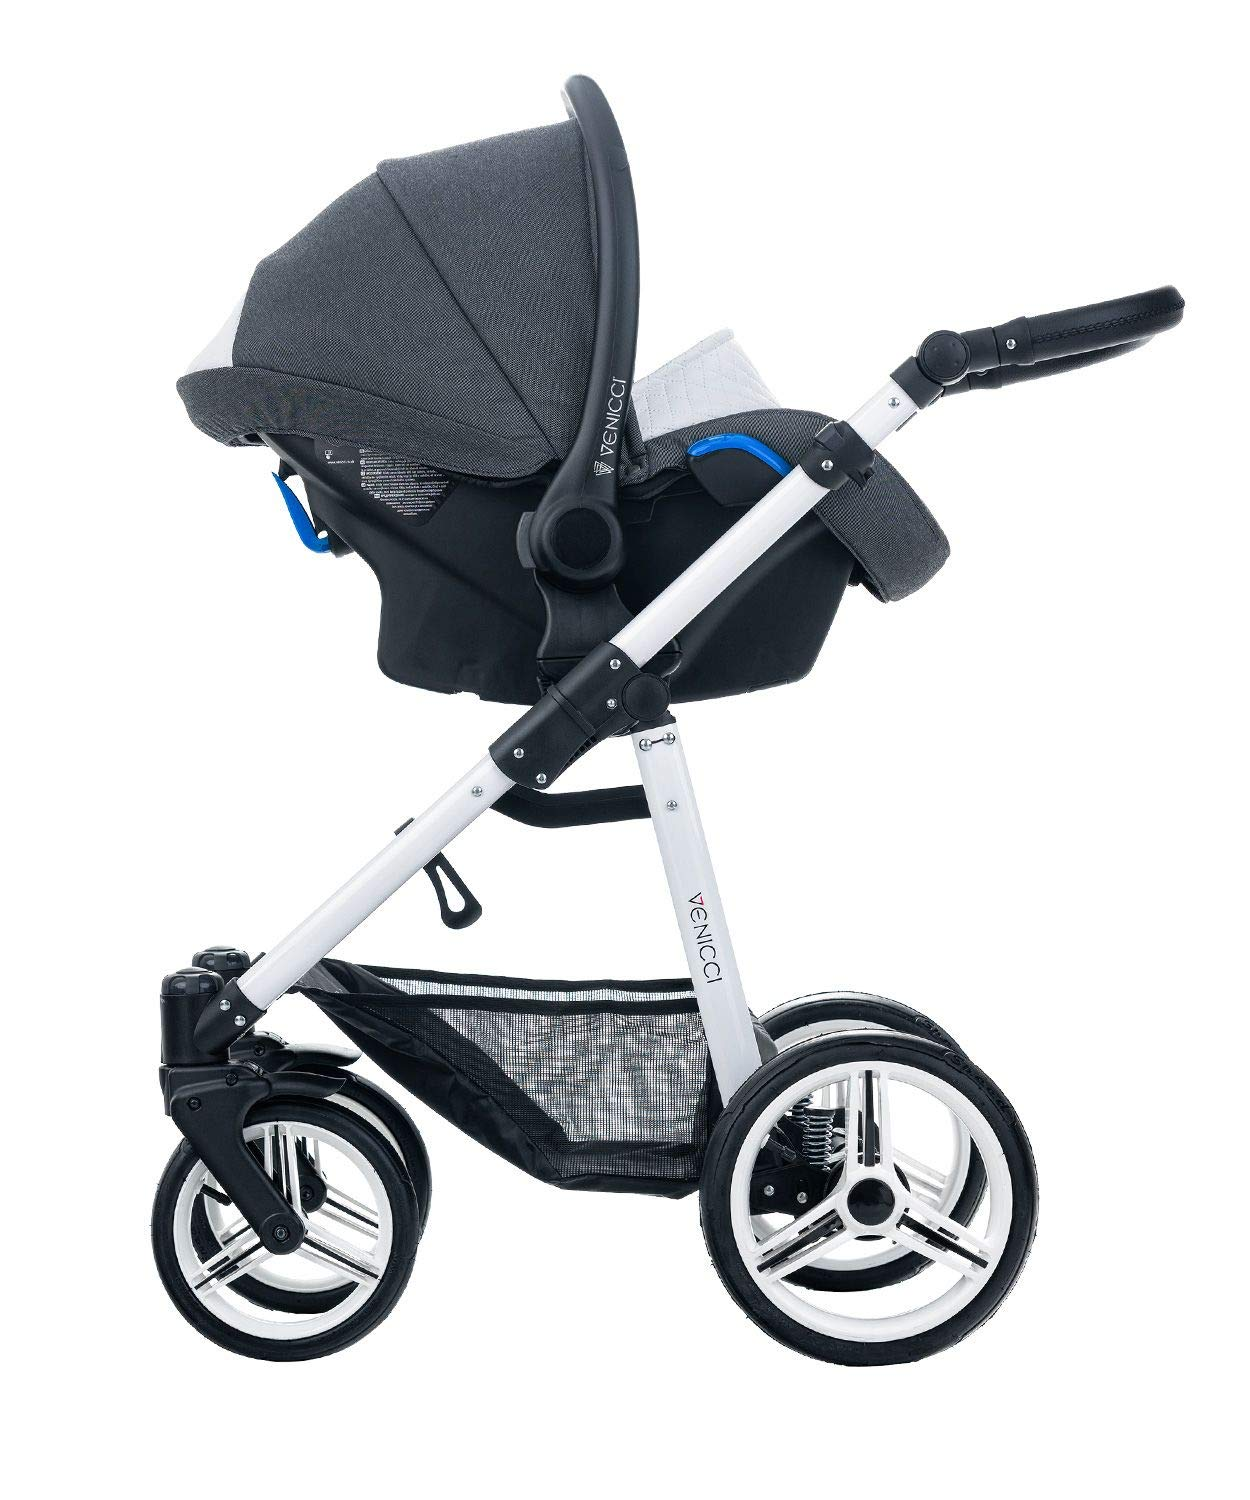 Venicci Pure 3-in-1 Travel System - Denim Black - with Carrycot + Car Seat + Changing Bag + Apron + Raincover + Mosquito Net + 5-Point Harness and UV 50+ Fabric + Car Seat Adapters + Cup Holder  3 in 1 Travel System with included Group 0+ Car Seat Suitable for your baby from birth until 36 months 5-point harness to enhance the safety of your child 4